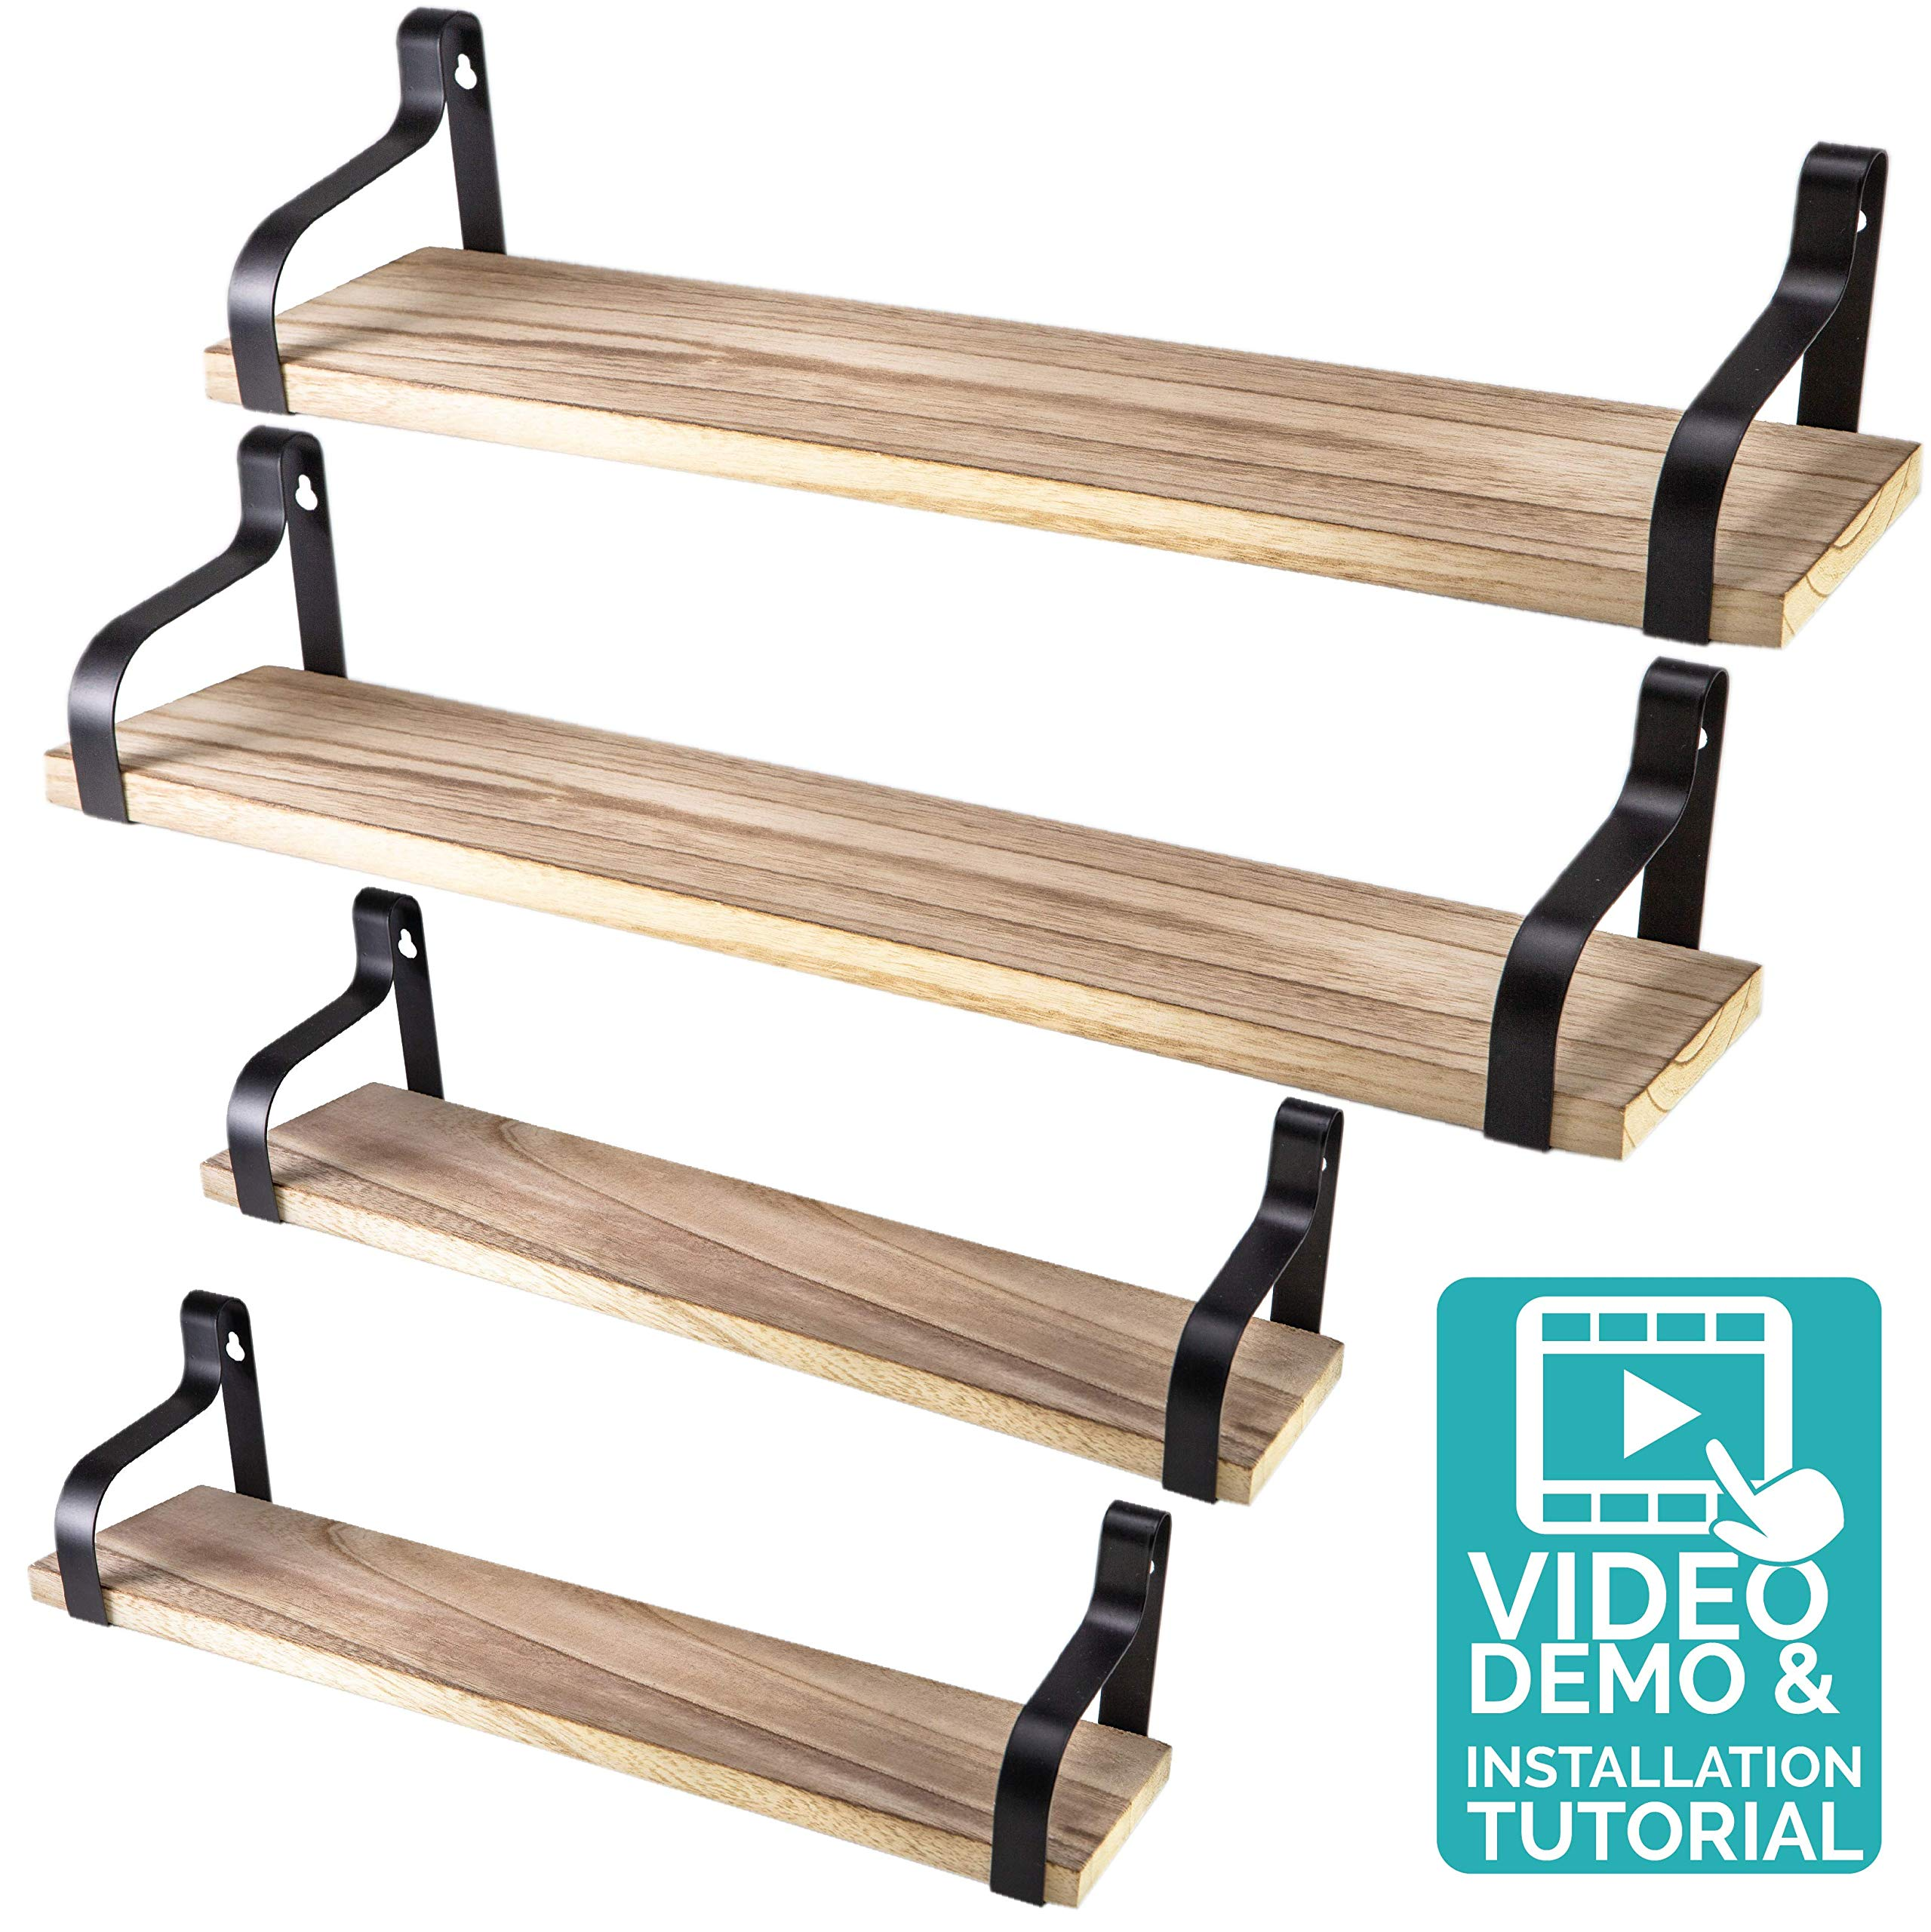 Floating Shelves Wall Mounted Set of 4 - Natural Rustic Wood Design Wall Storage Industrial Decor Shelving for Bedroom, Living Room, Bathroom Kitchen and in the Office by NATURE SUPPLIES